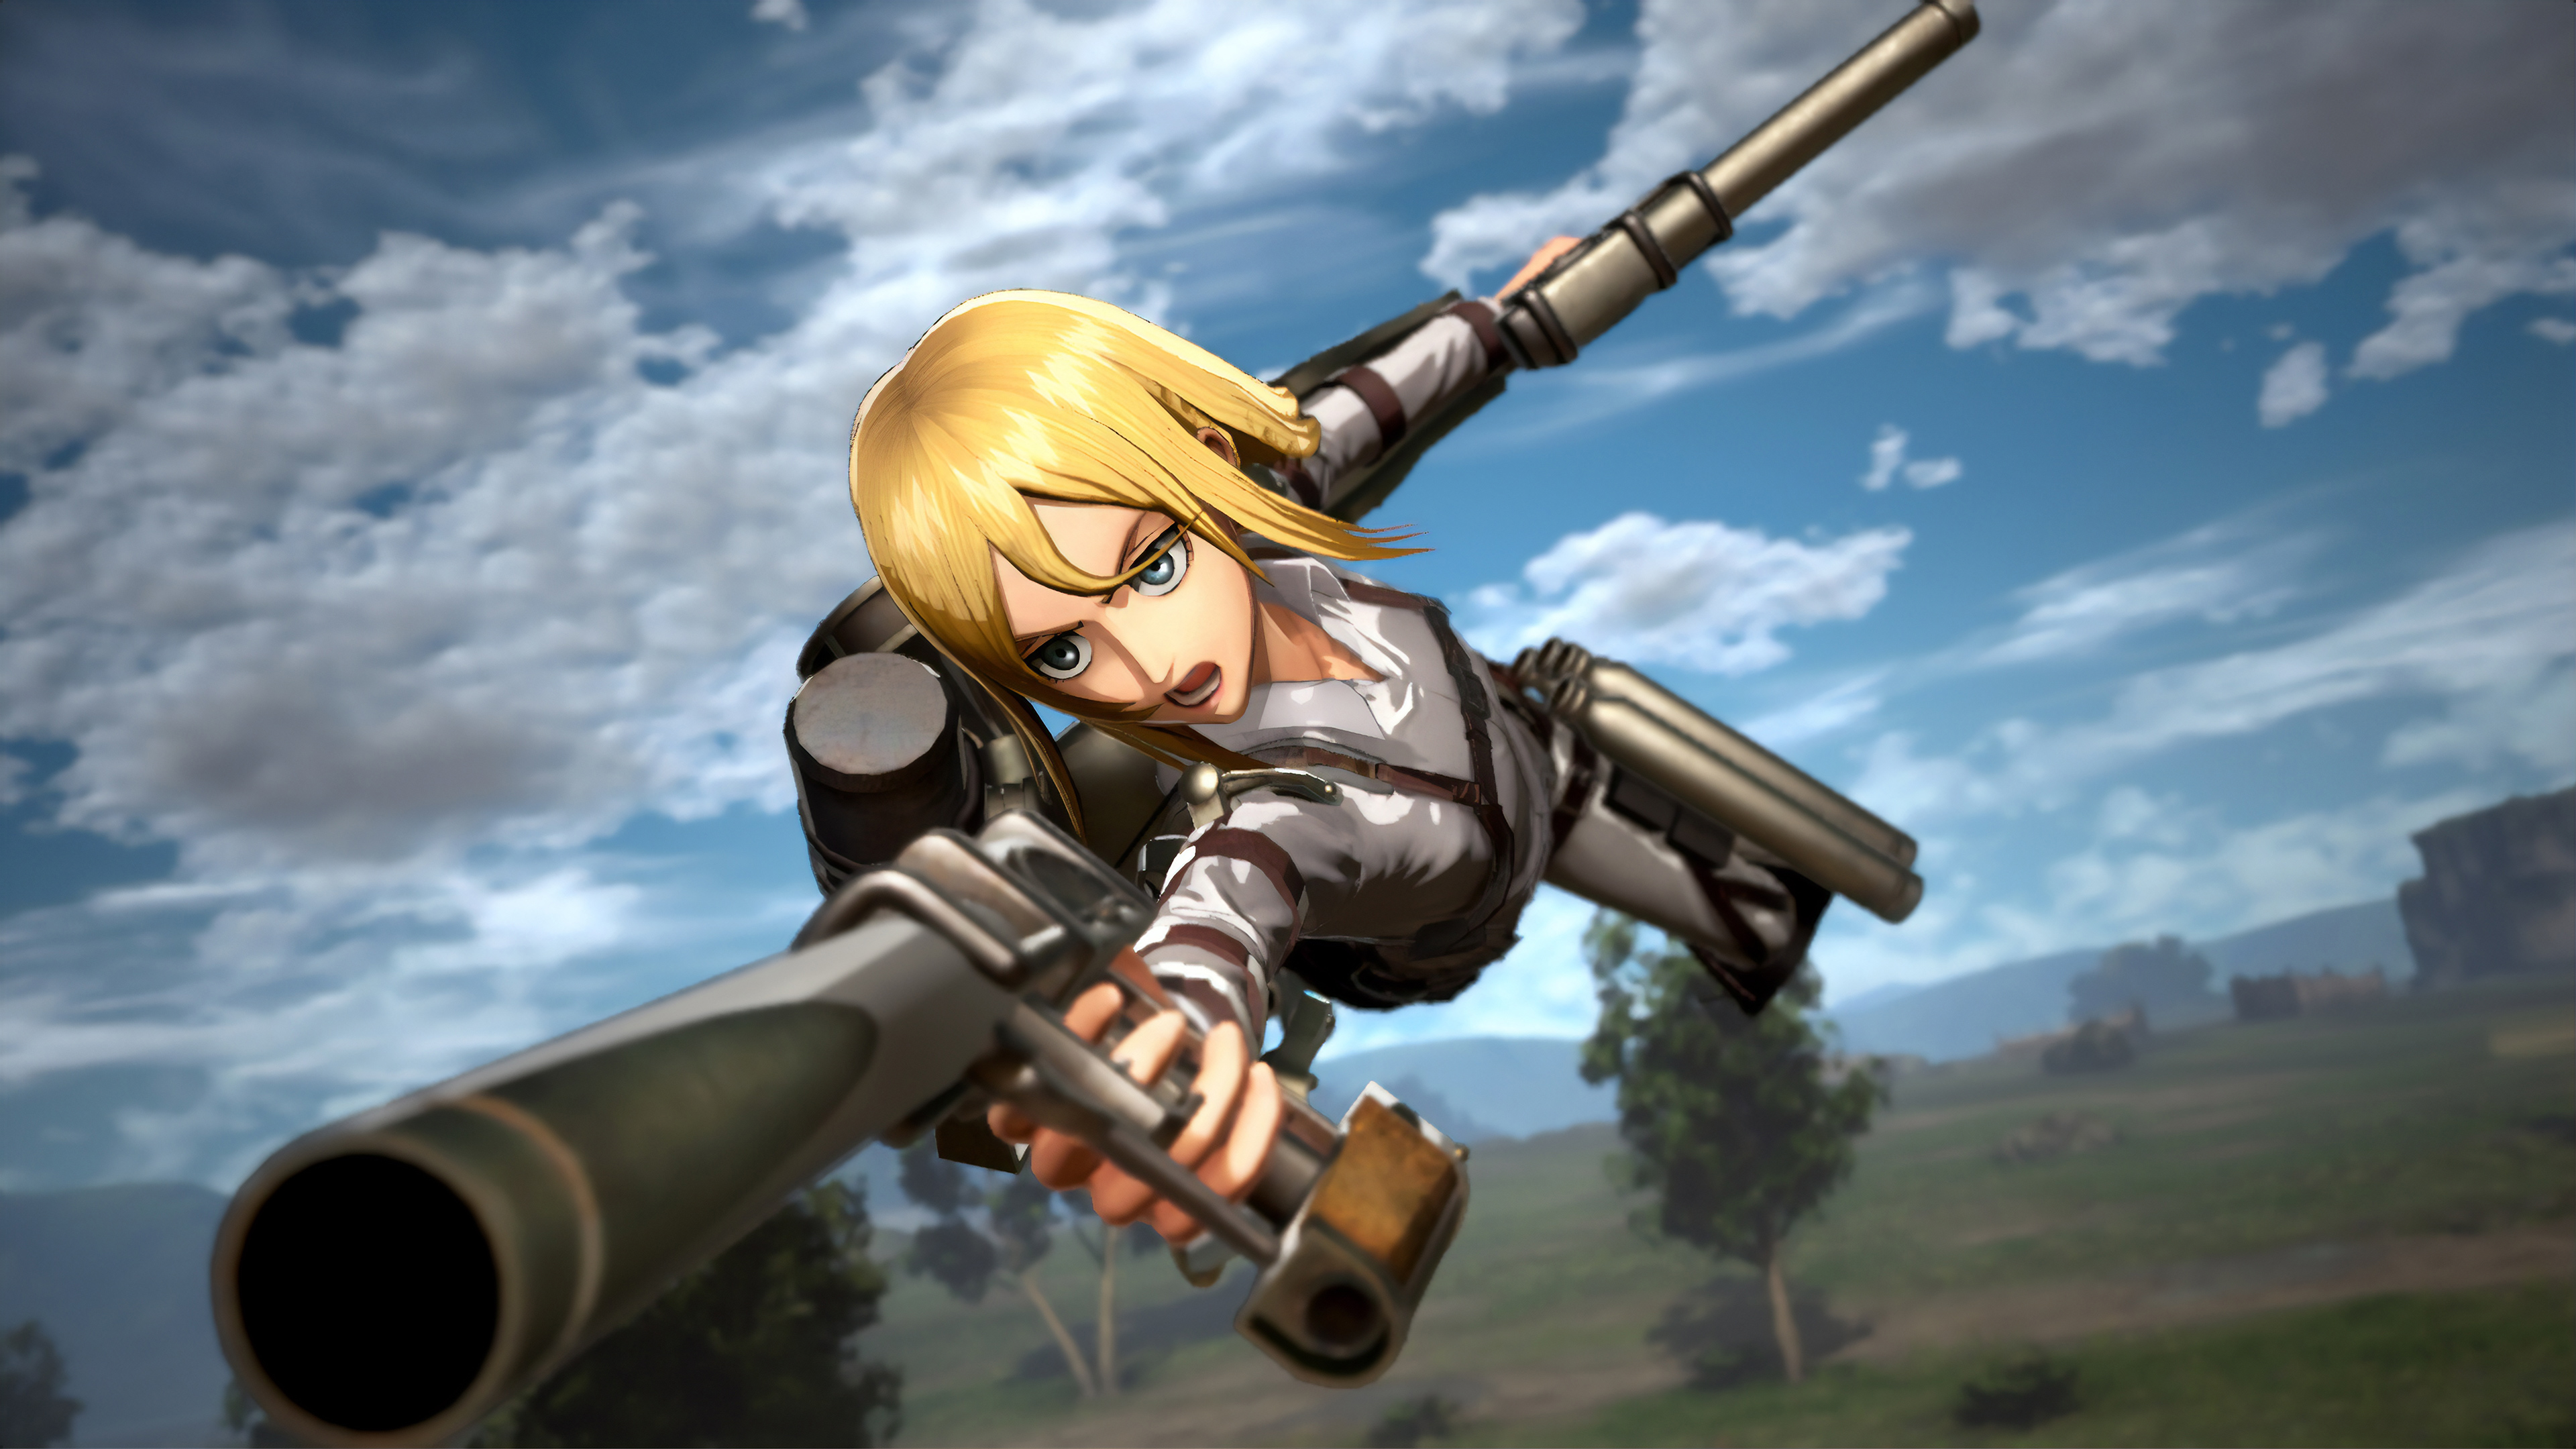 Attack On Titan 2 2019, HD Games, 4k Wallpapers, Images ...